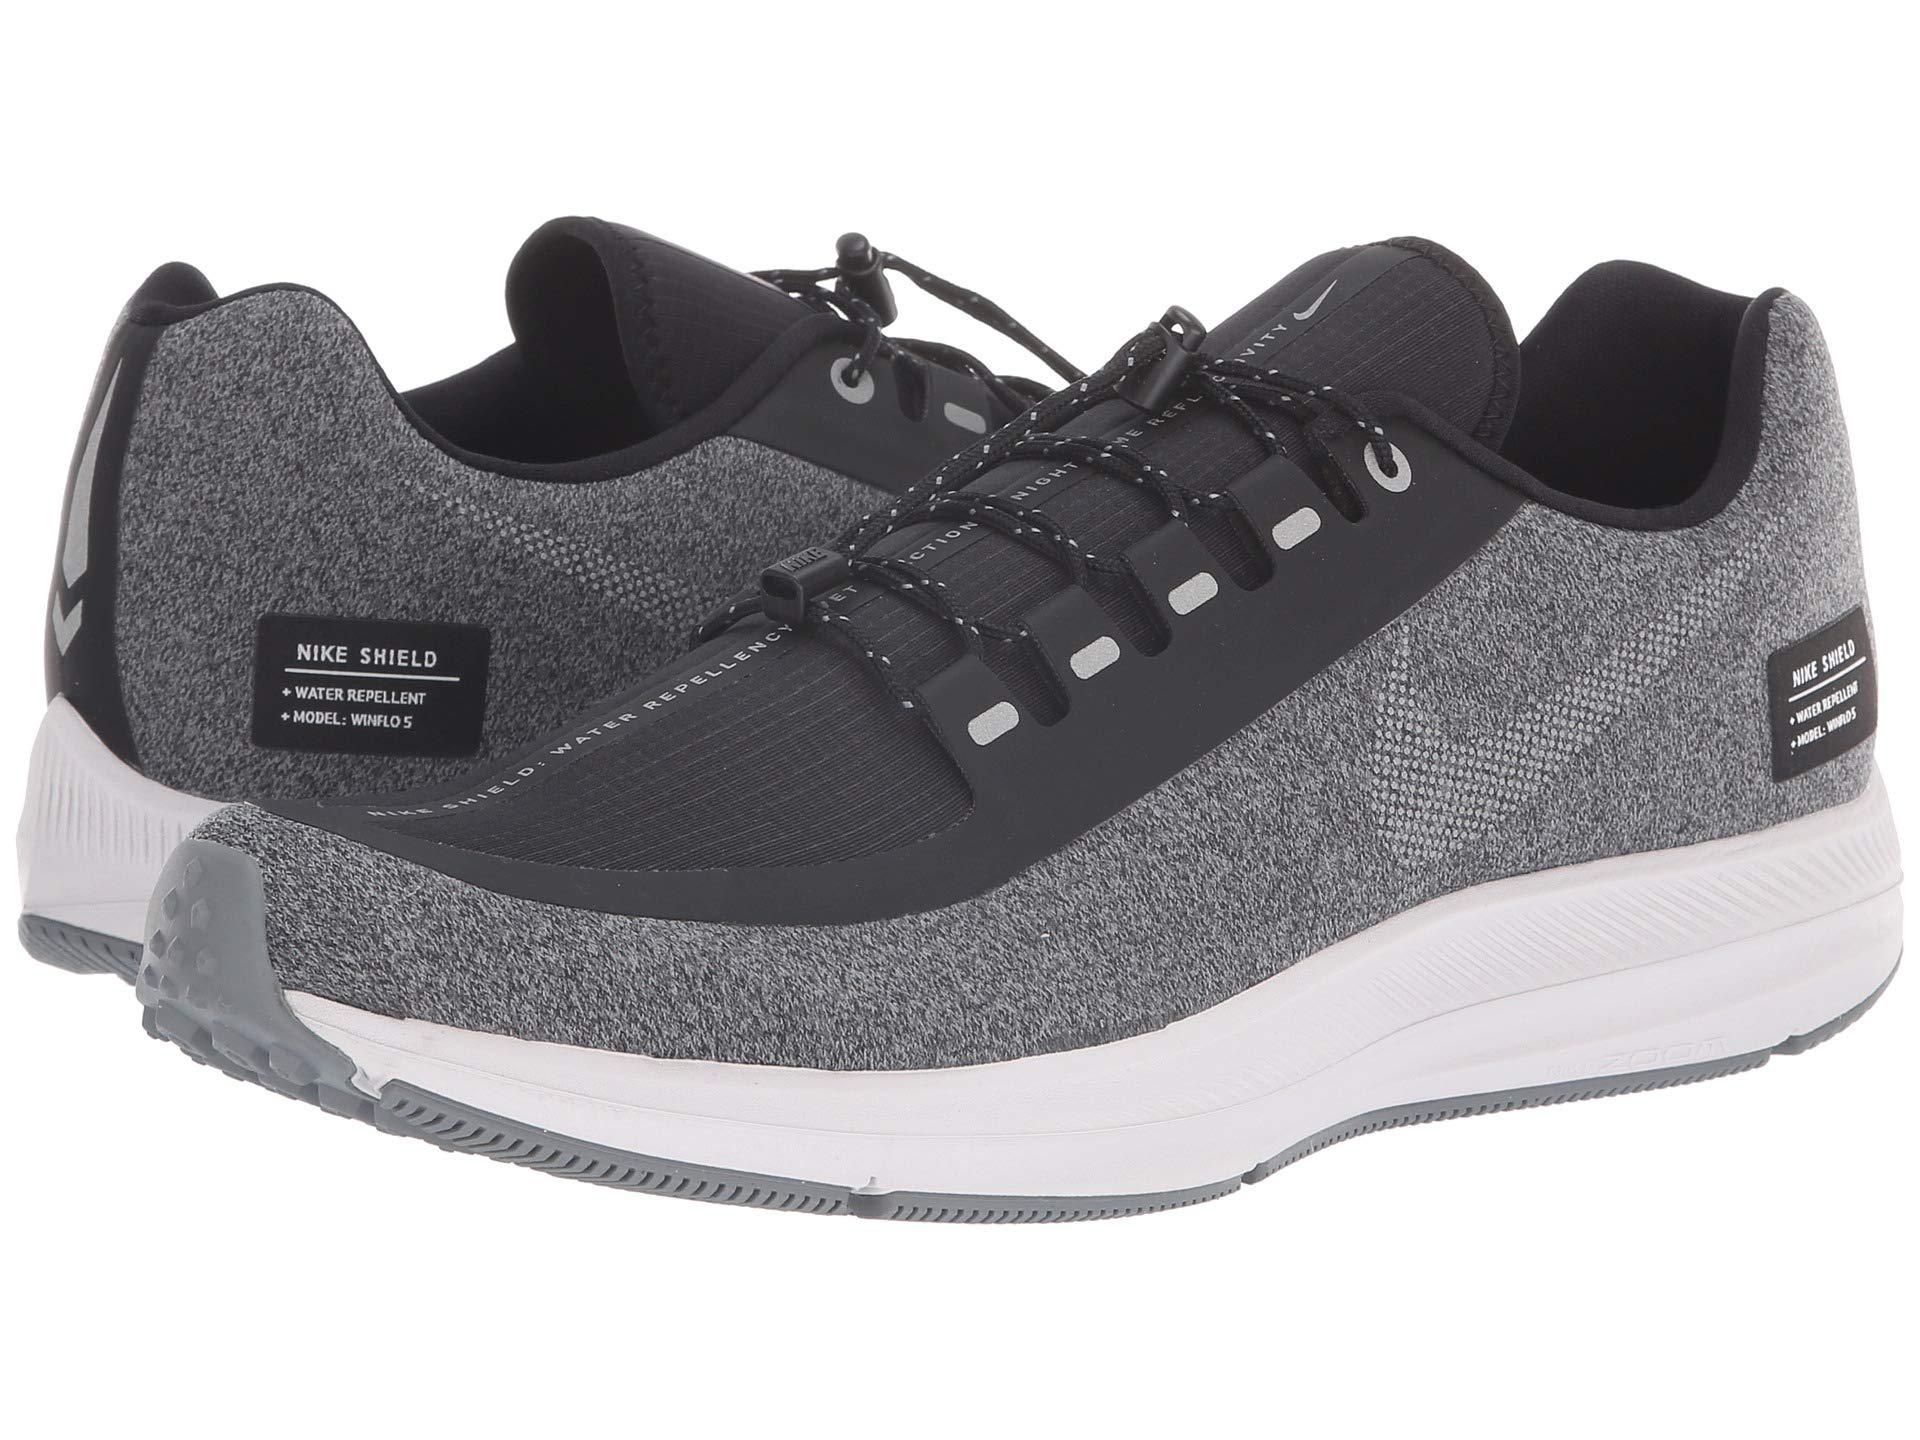 check out bbc38 89355 Air Zoom Winflo 5 Run Shield (black/metallic Silver/cool Grey) Men's  Running Shoes